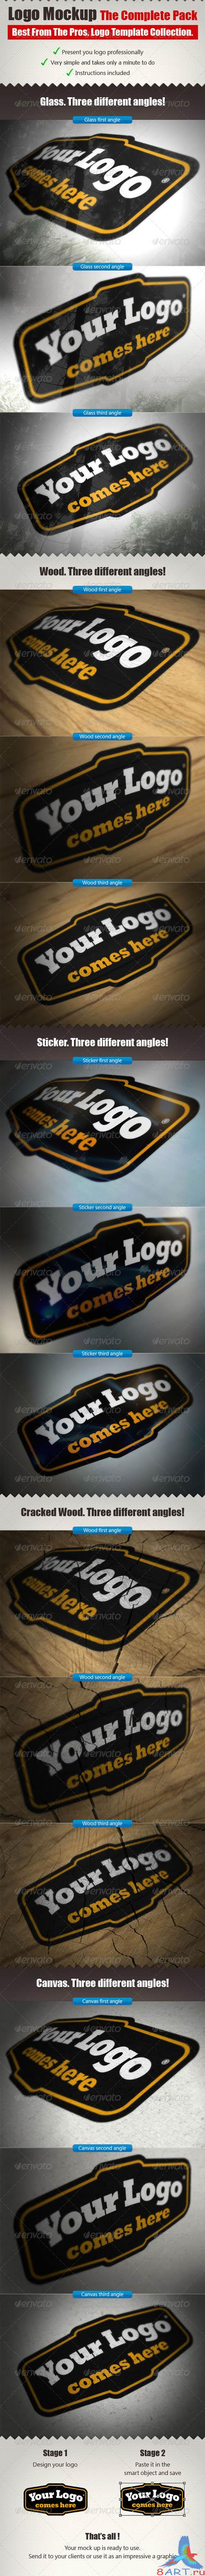 GraphicRiver - The Complete Logo Mock Ups Pack 536770